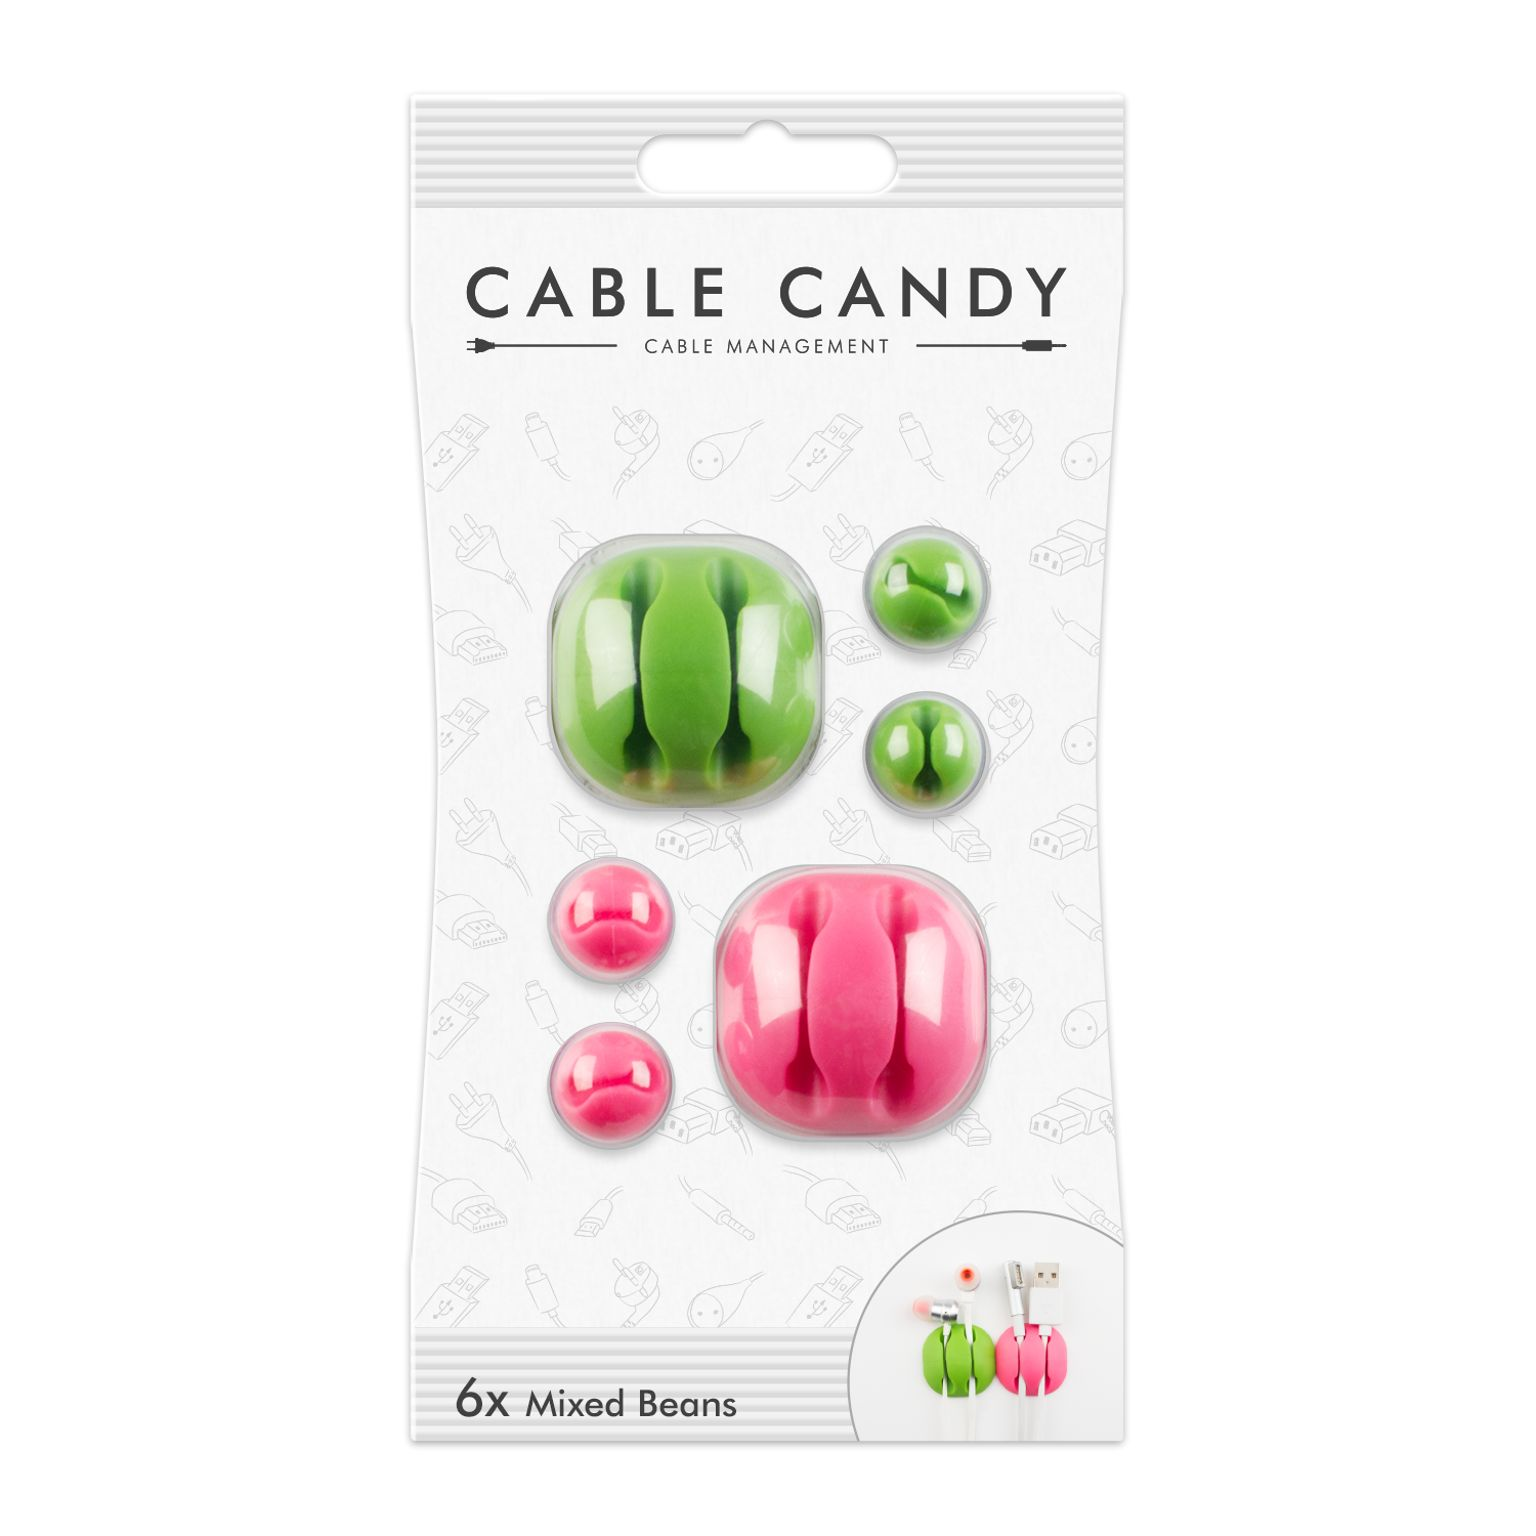 Cable Candy MIXED BEANS